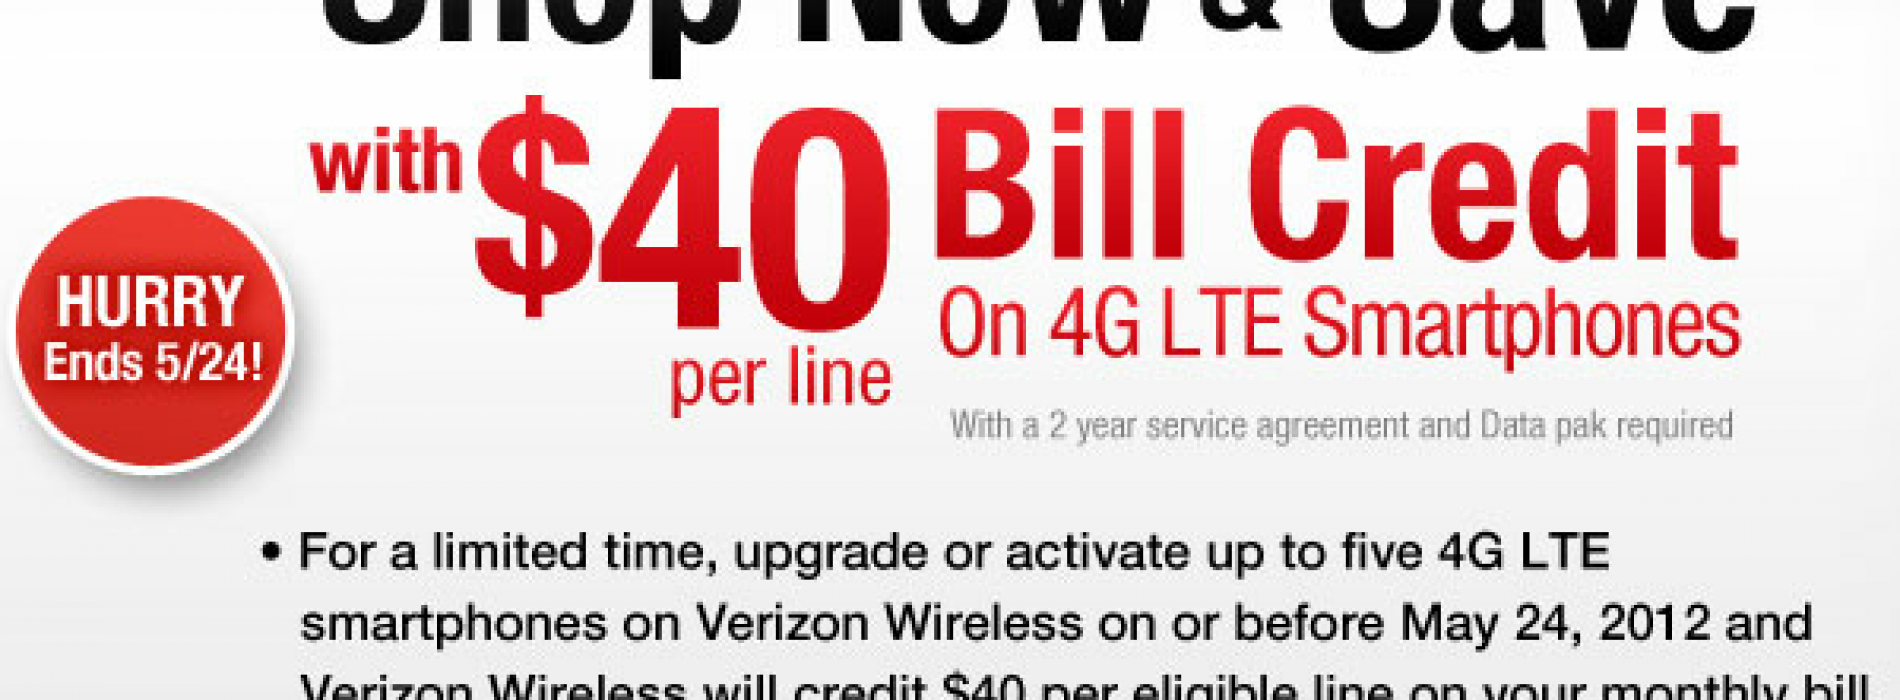 Wirefly offering $40 credit for each Verizon upgrade, activation